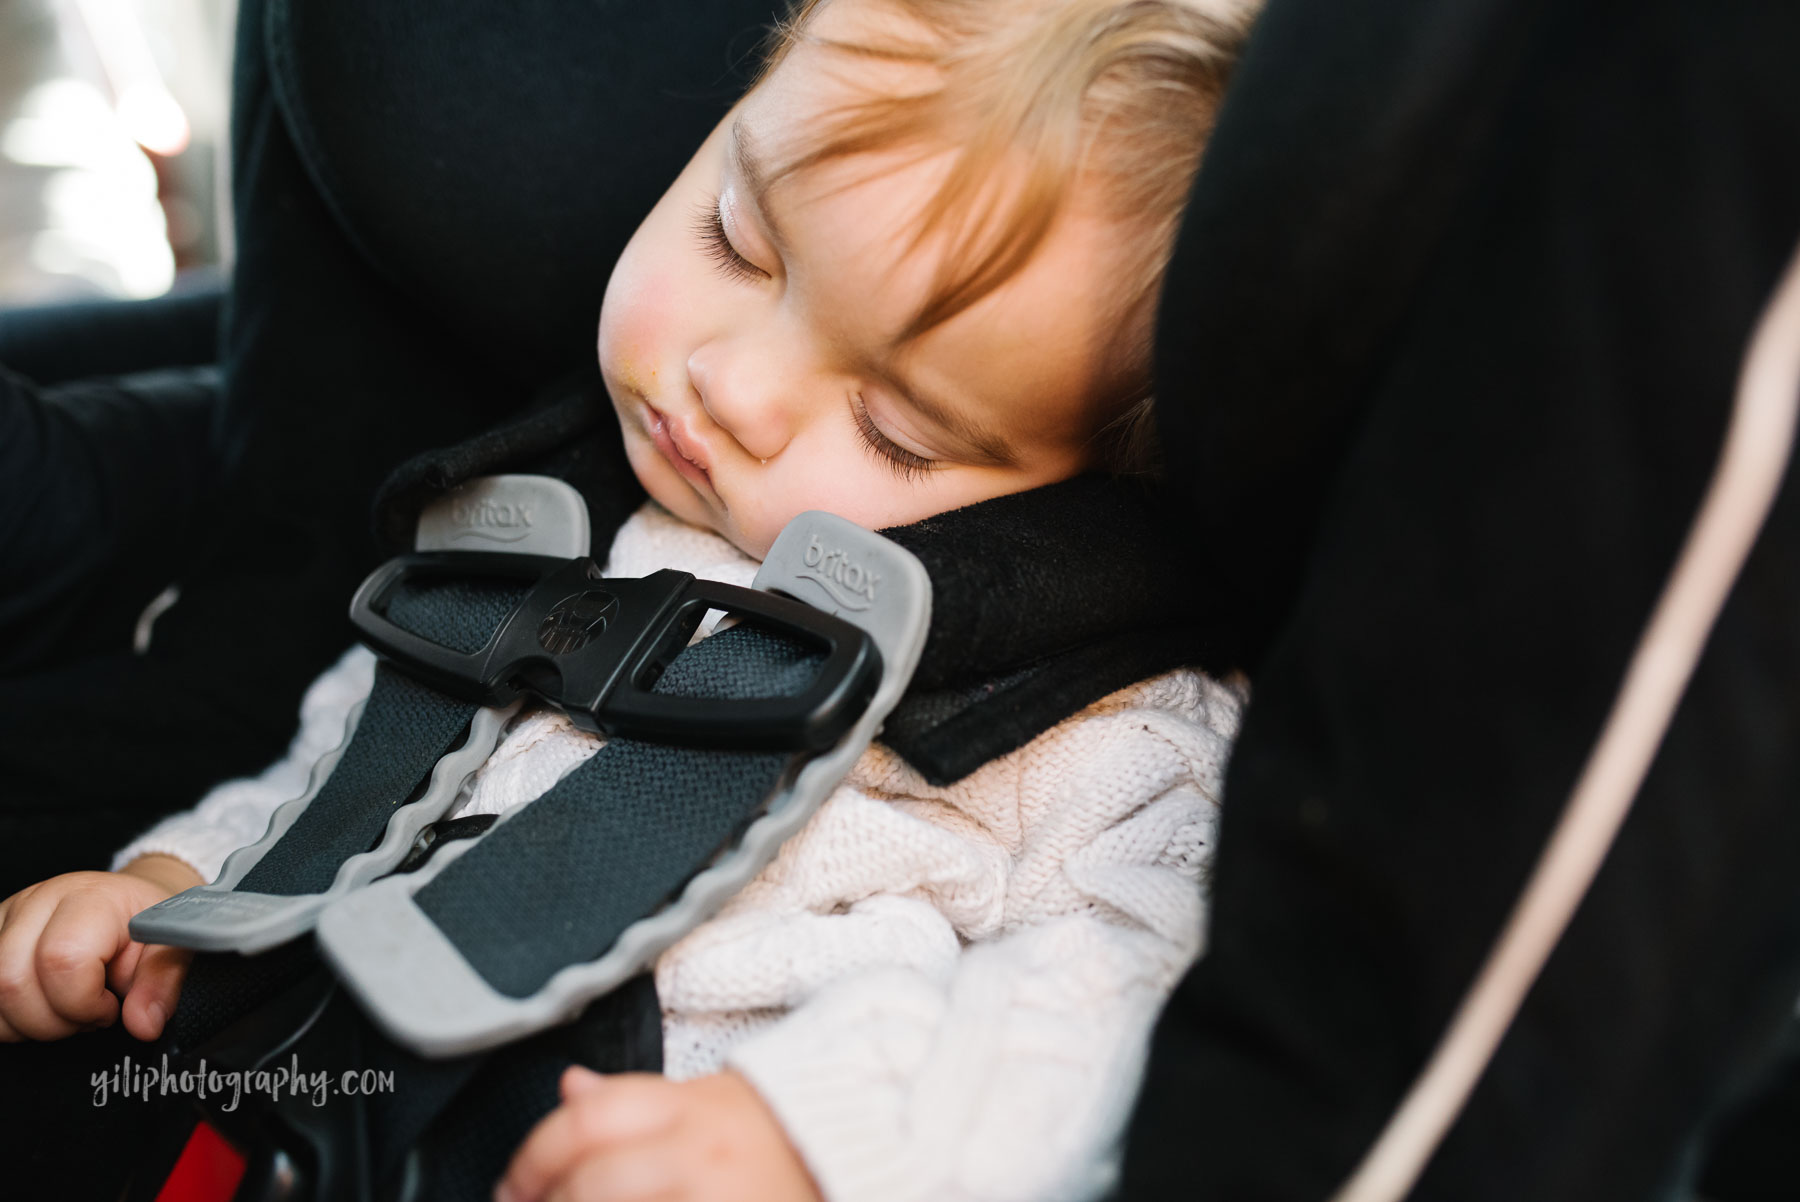 Toddler girl with long eyelashes asleep in carseat